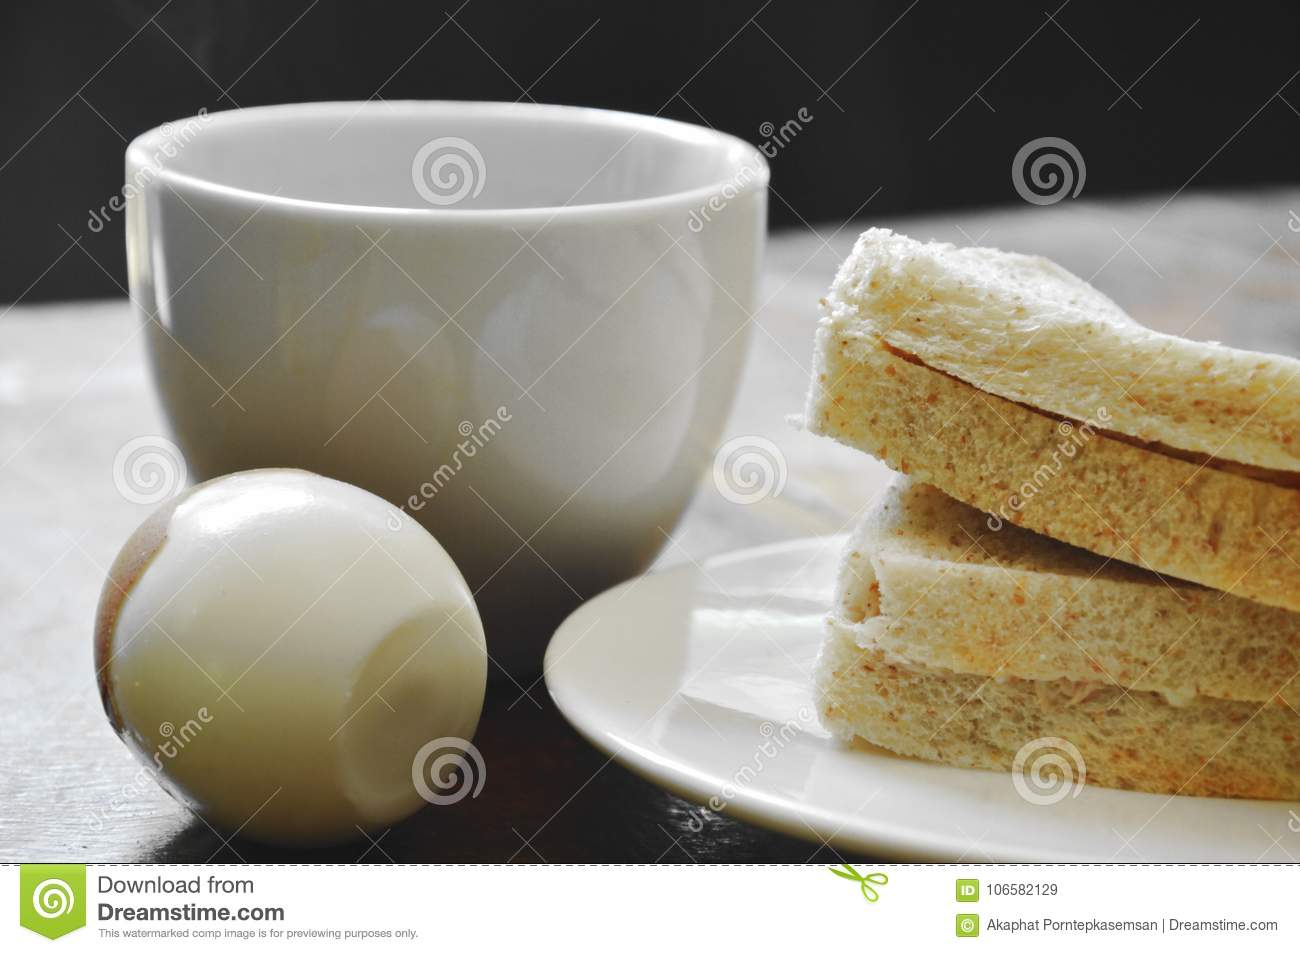 Tuna whole wheat sandwich on plate and boiled egg eat couple with black coffee cup